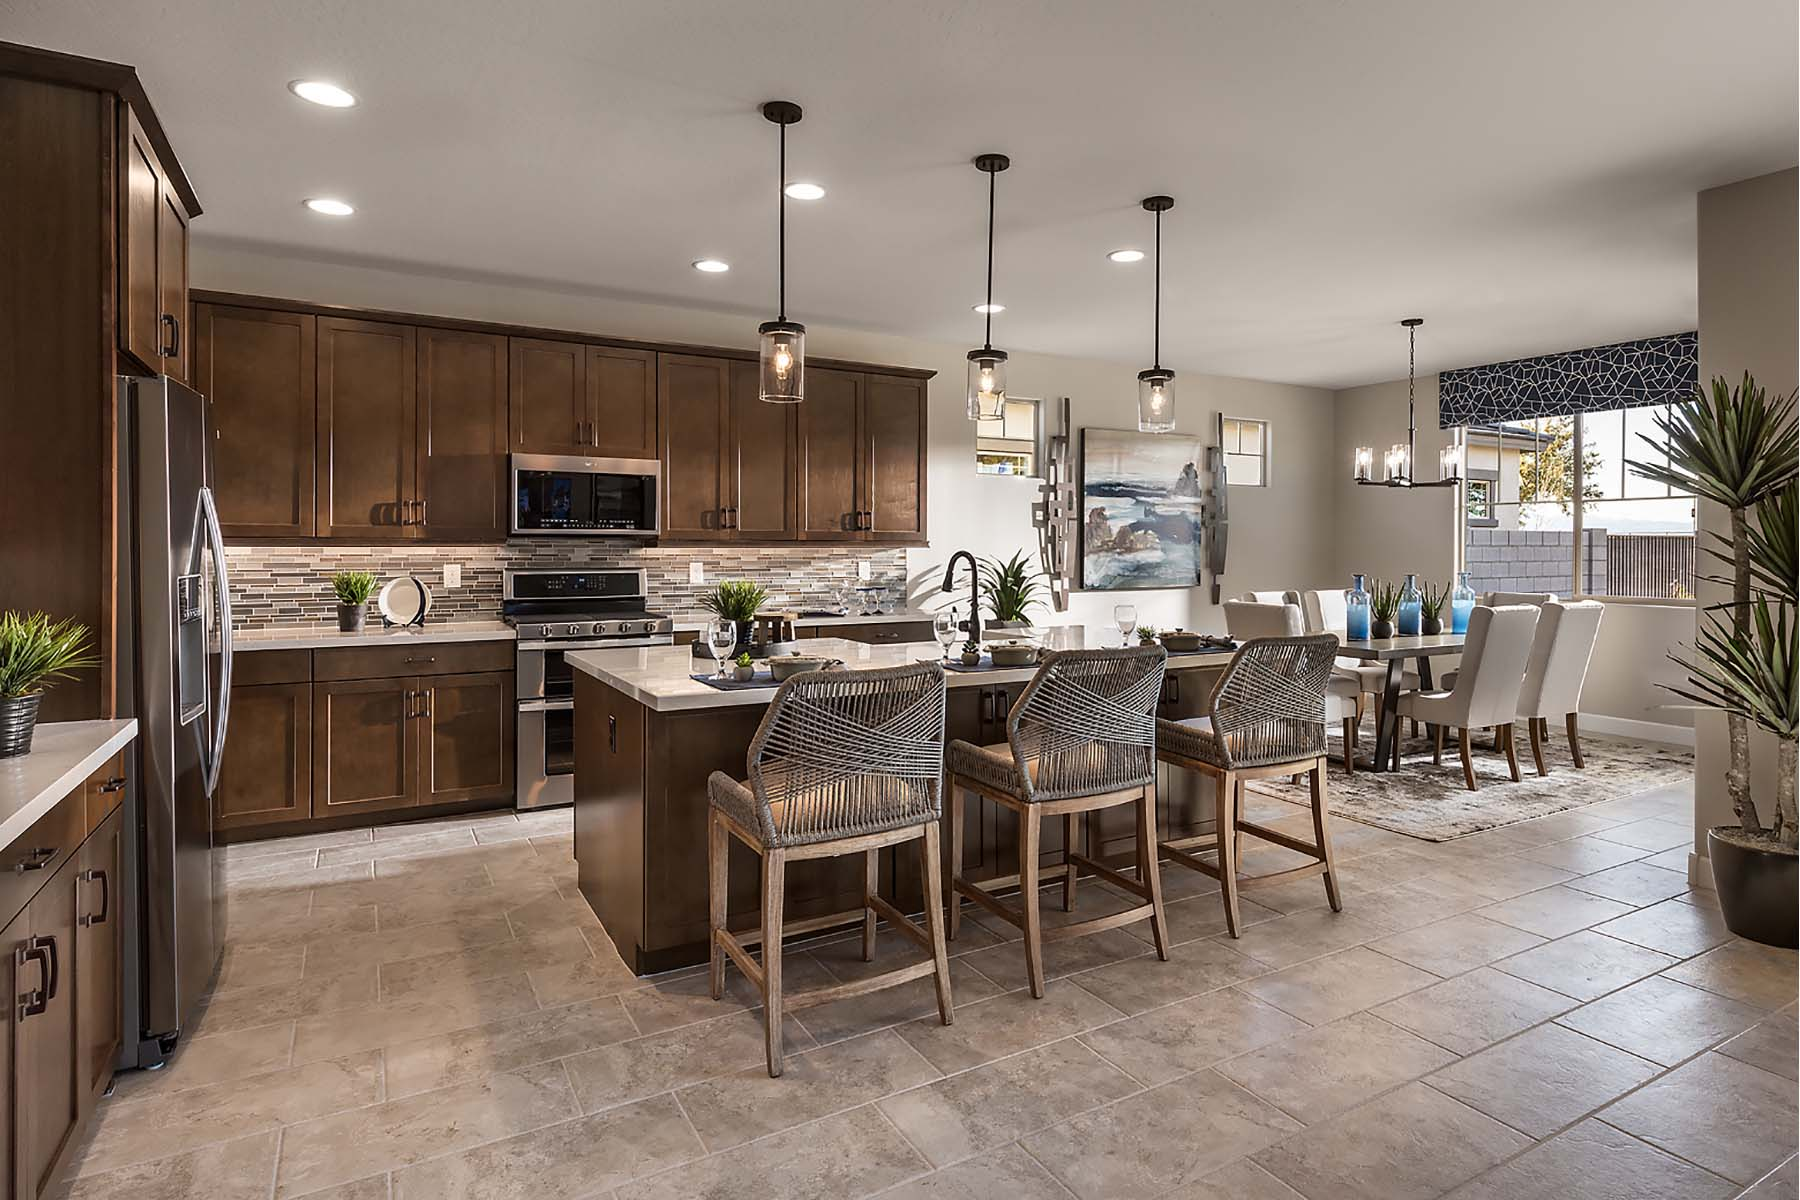 Leander Plan Kitchen at Vista Diamante at Camelback Ranch in Phoenix Arizona by Mattamy Homes